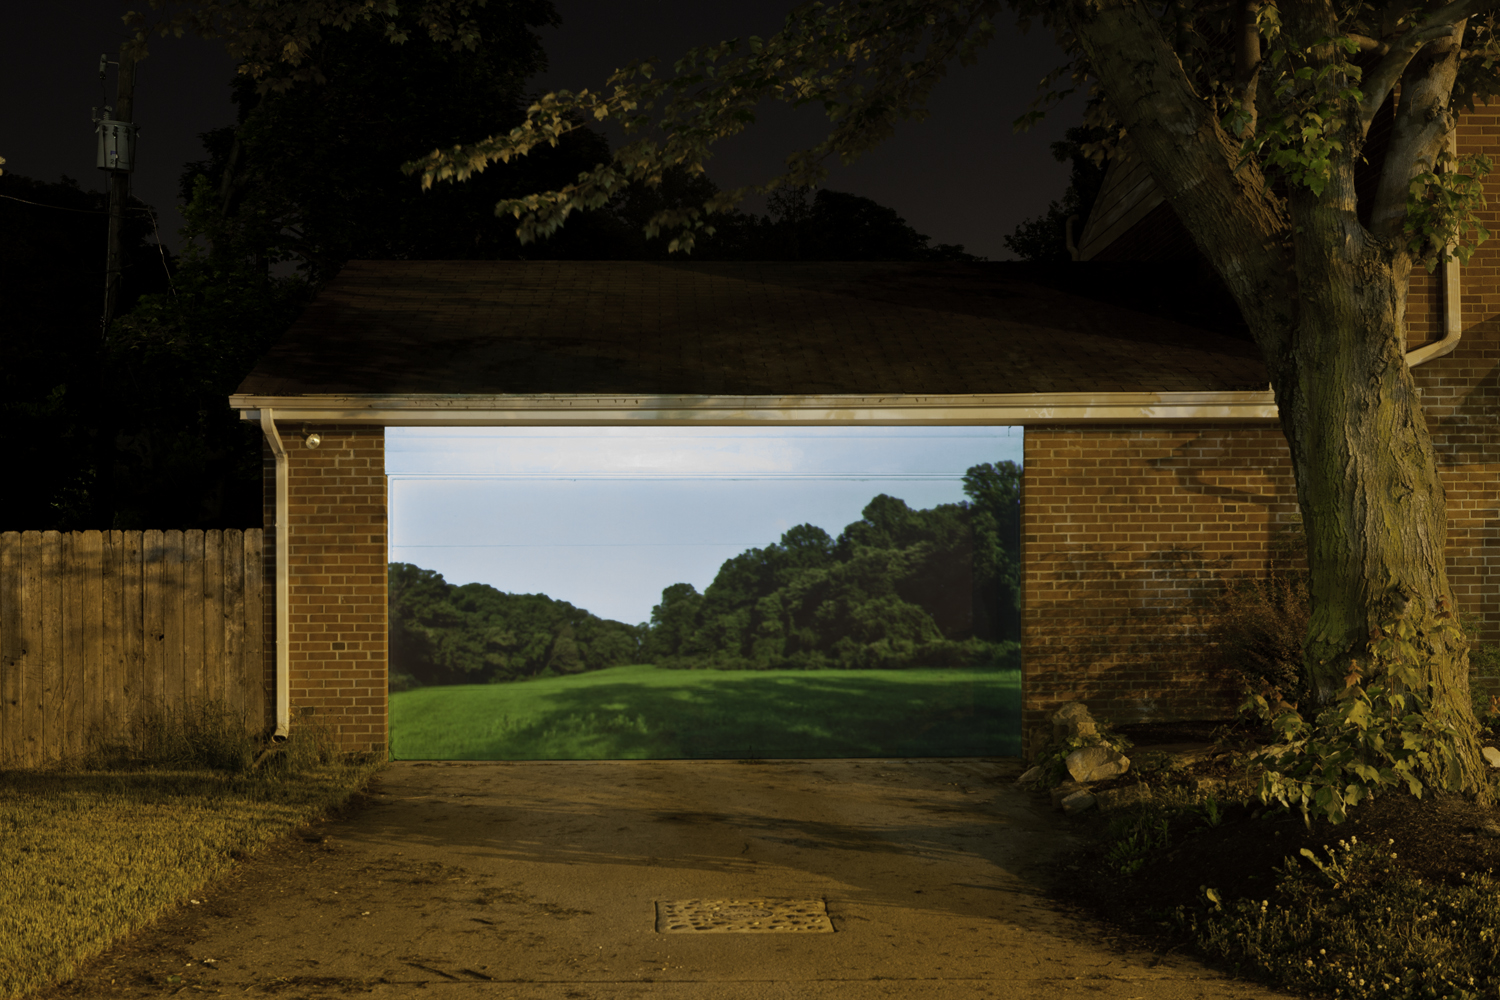 Garage Door, 2015, archival pigment print